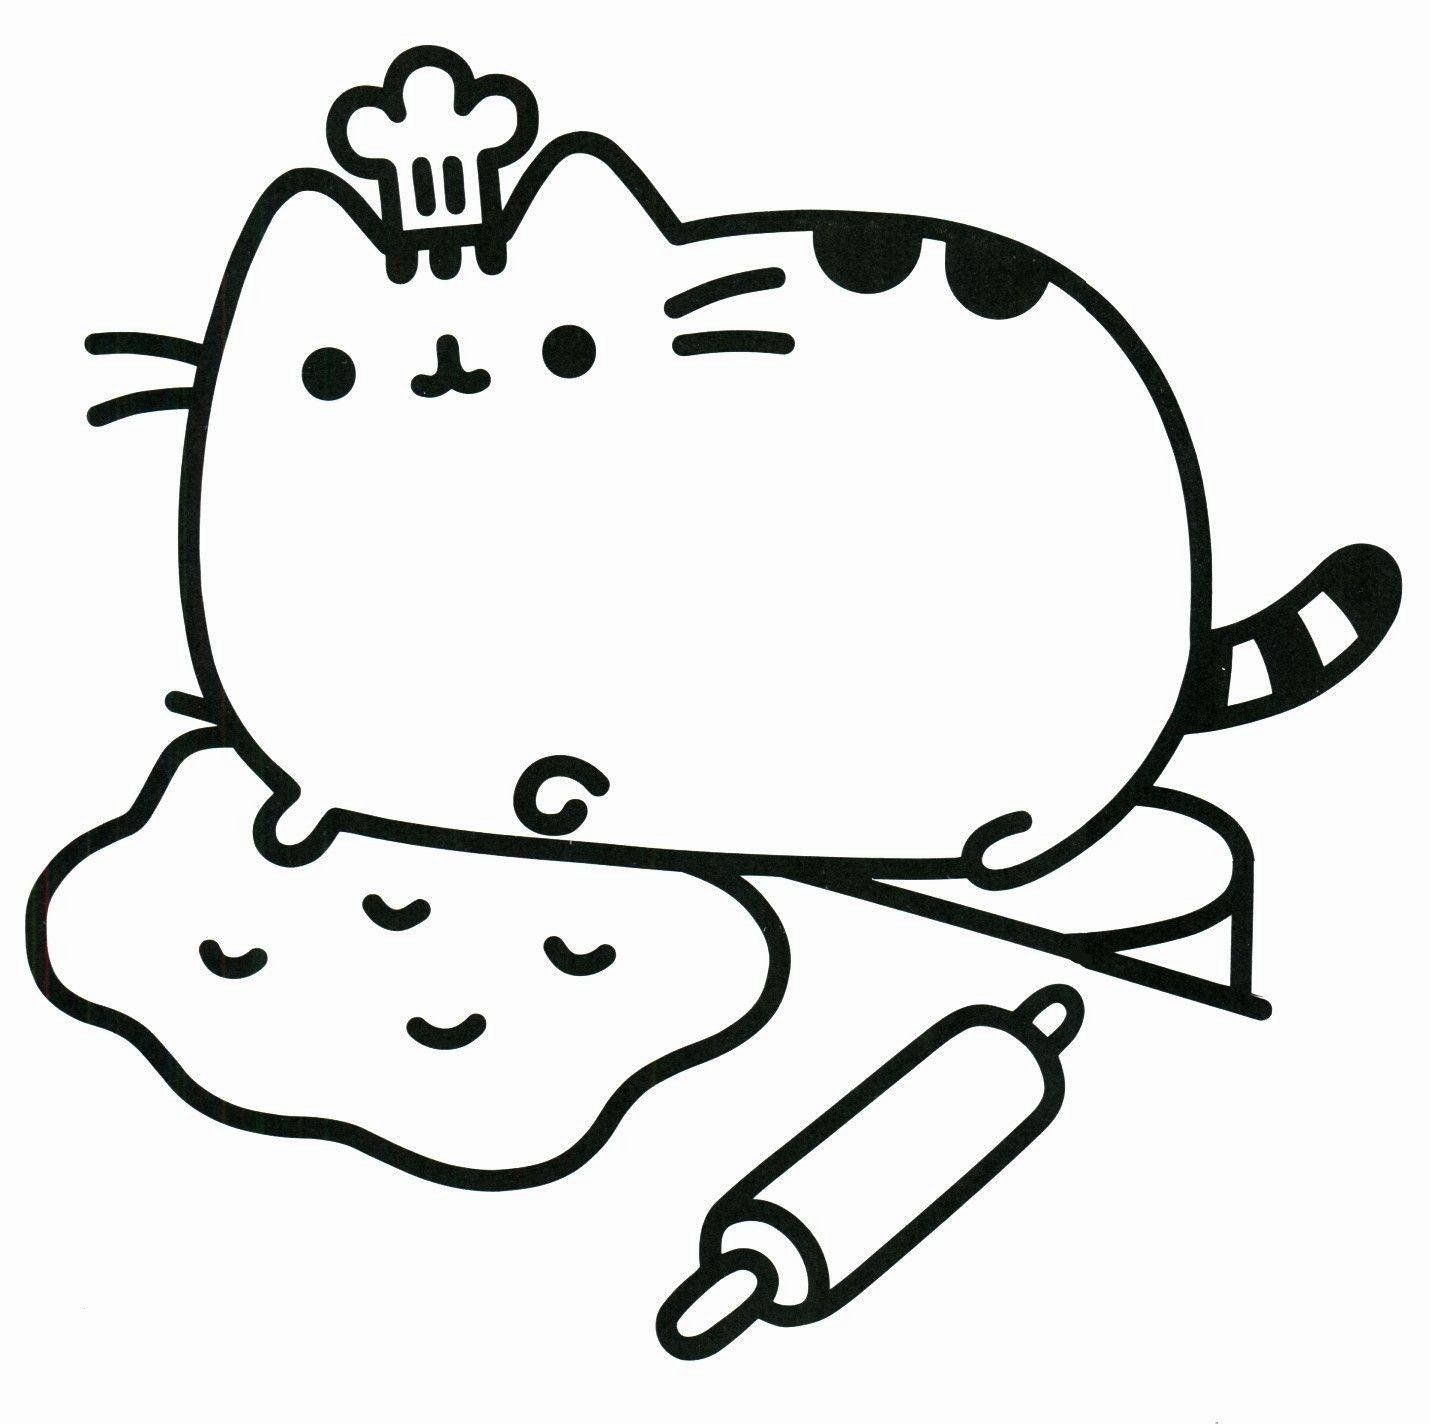 Coloring Pages Kawaii Animals Inspirational Awesome Cute Kawaii Food Coloring Pages Pusheen Coloring Pages Cat Coloring Page Food Coloring Pages